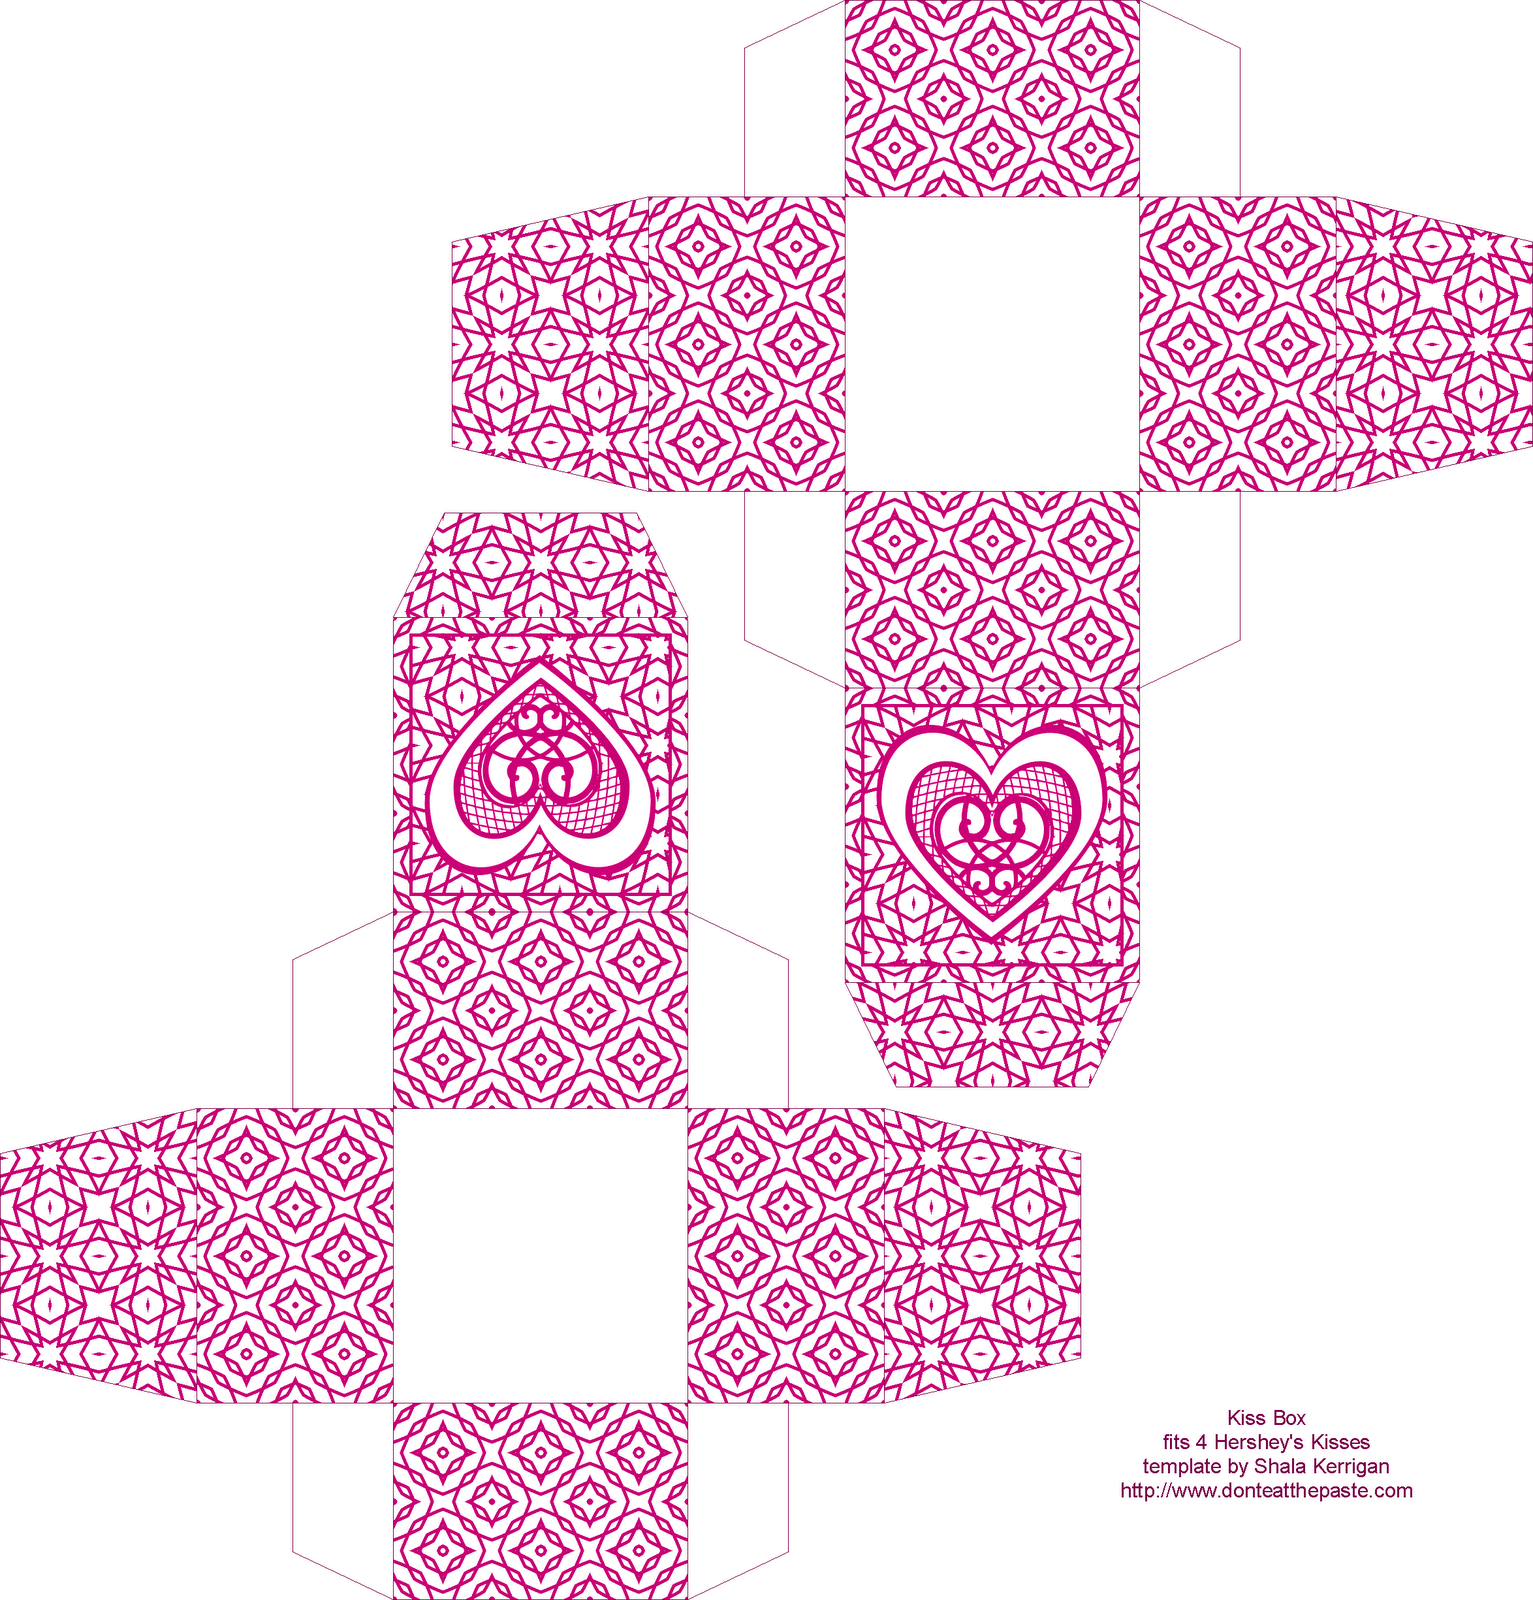 Kiss Boxes 5 Colors Printable Gift Bags Paper Box Template Valentines Printables [ 1600 x 1533 Pixel ]